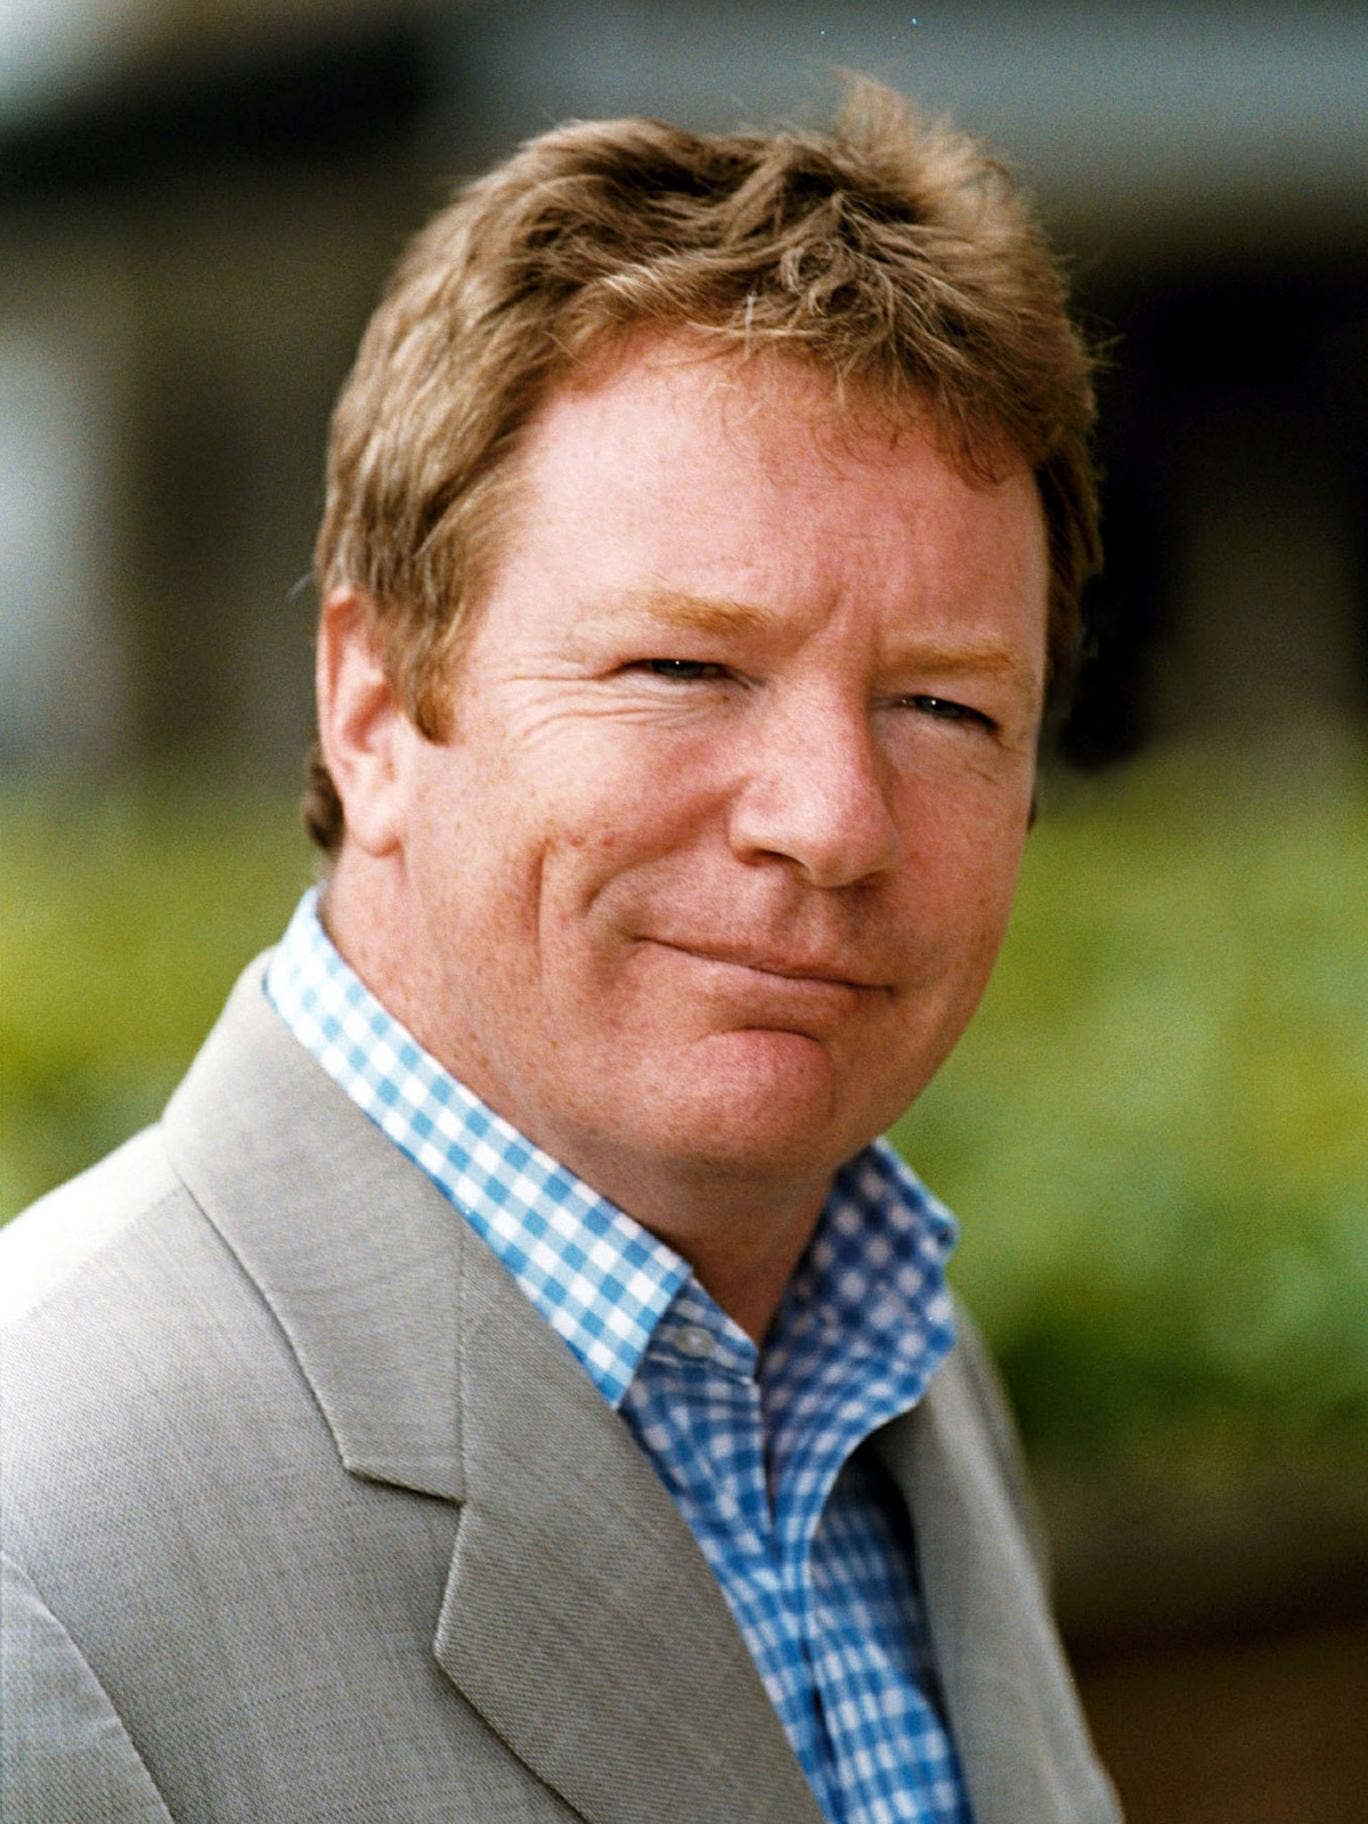 Jim Davidson has expressed relief after he was told he will not be charged with any sexual offence